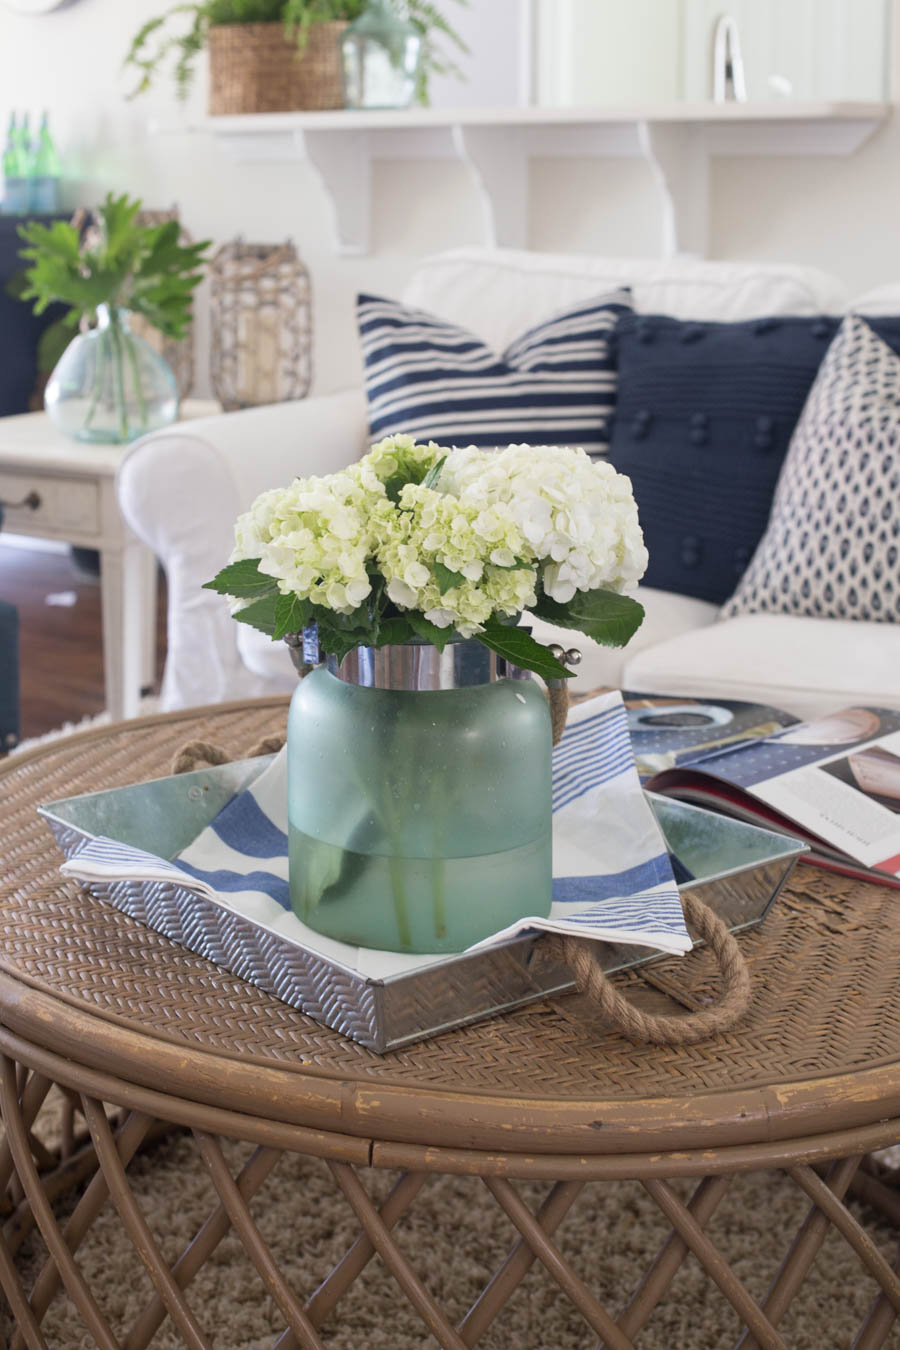 Delightful 30 Summer Decorating Ideas   Easy Ways To Decorate Your Home For Summer